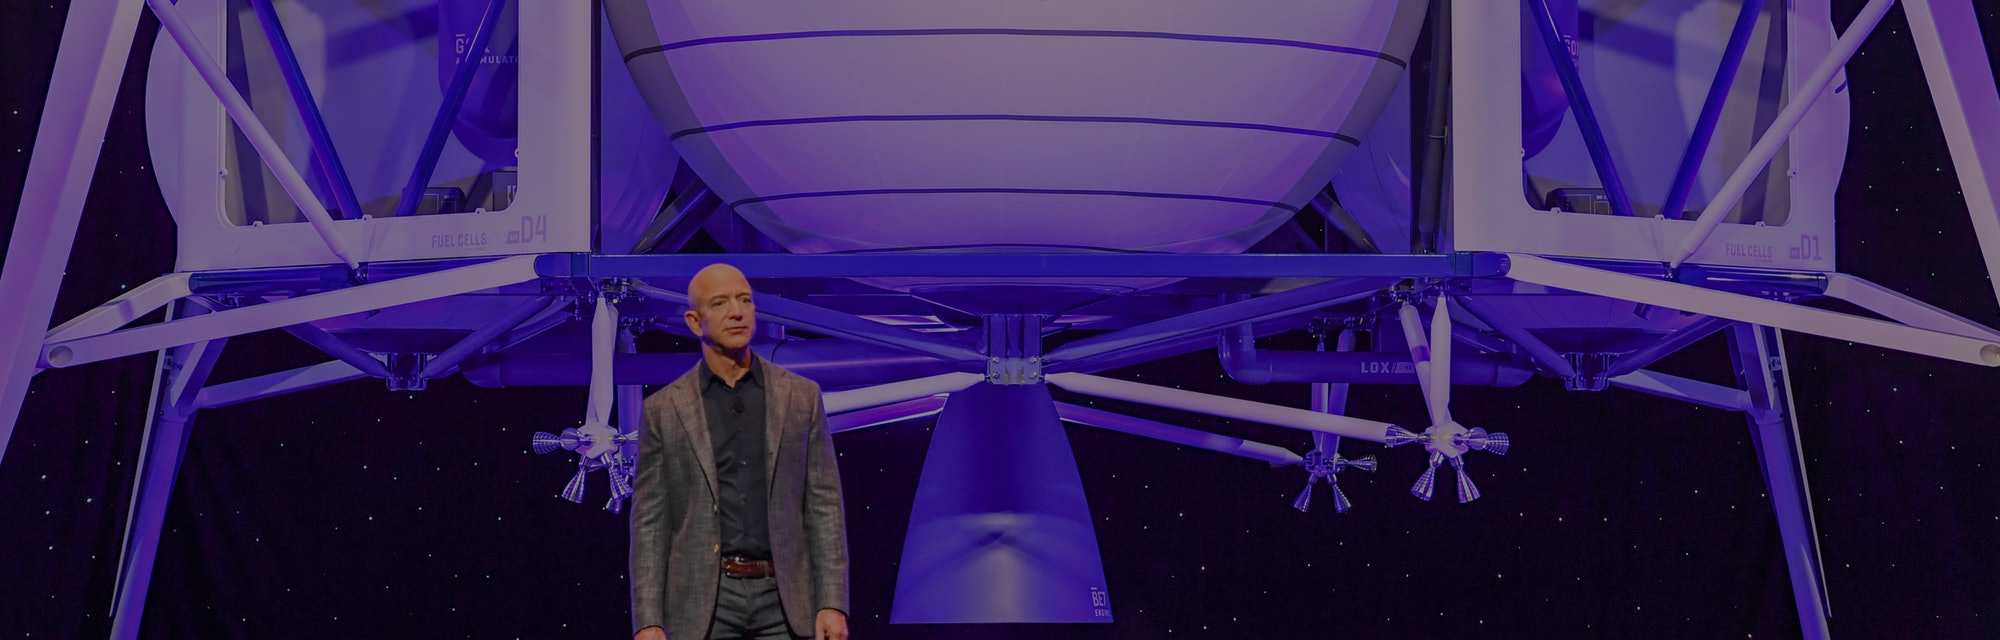 Jeff Bezos speaking at a presentation for his rocket company Blue Origin.